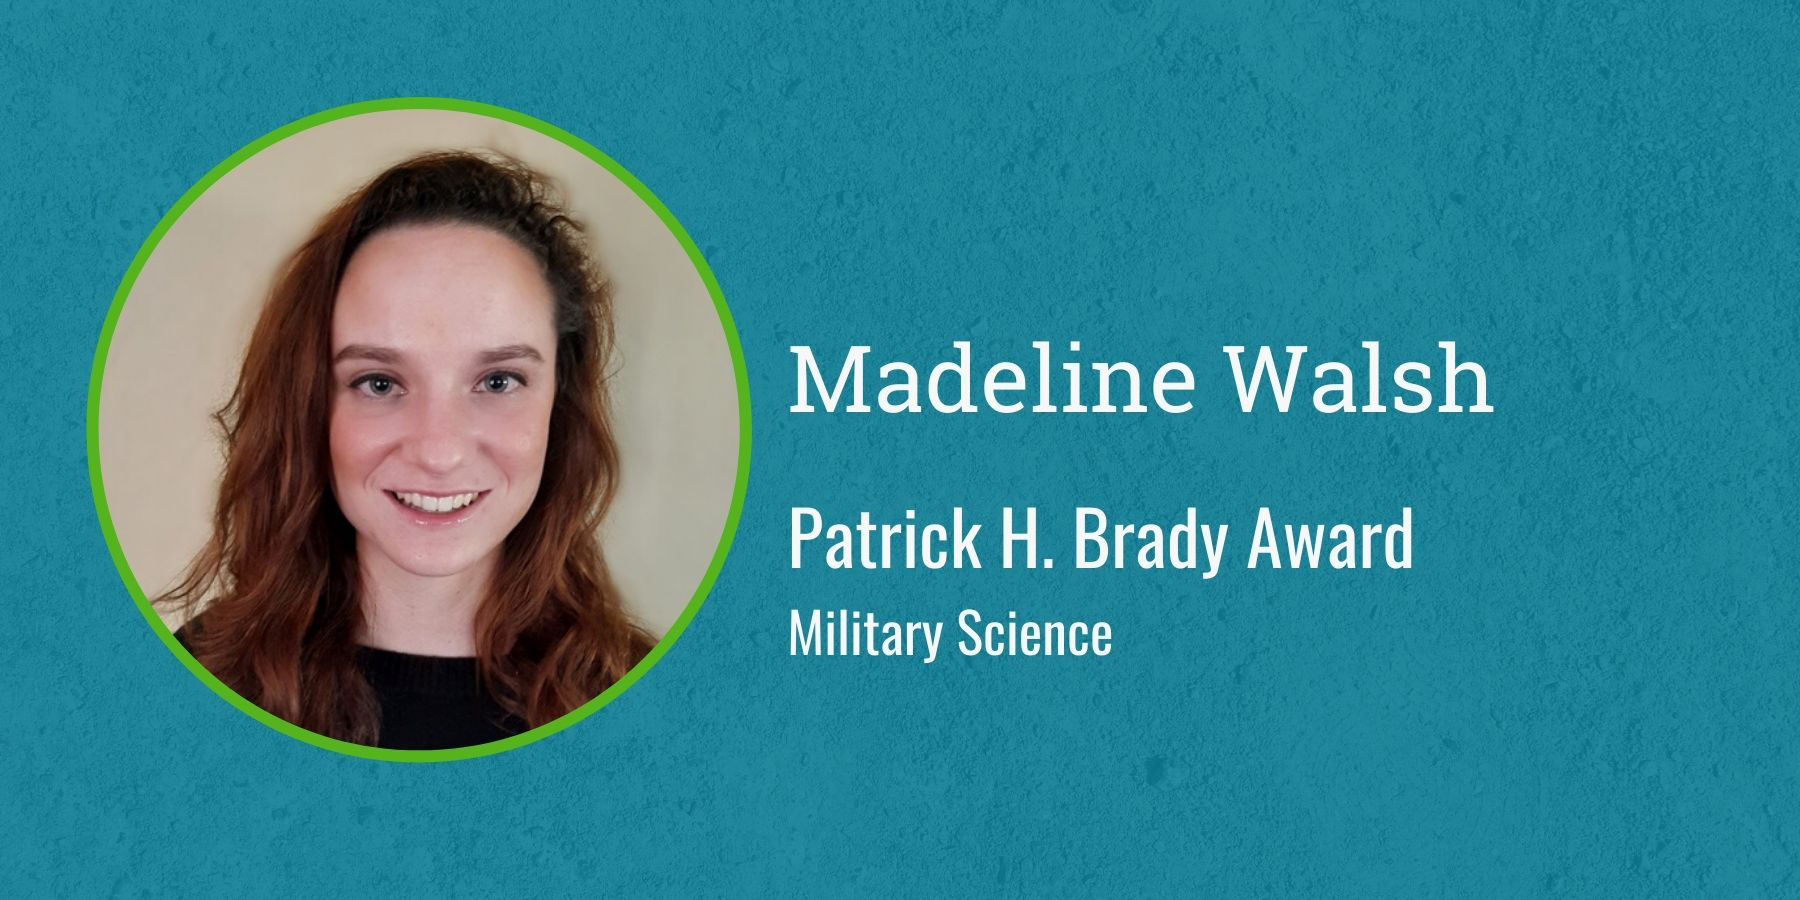 Photo of Madeline Walsh and text Patrick H. Brady Award, Military Science